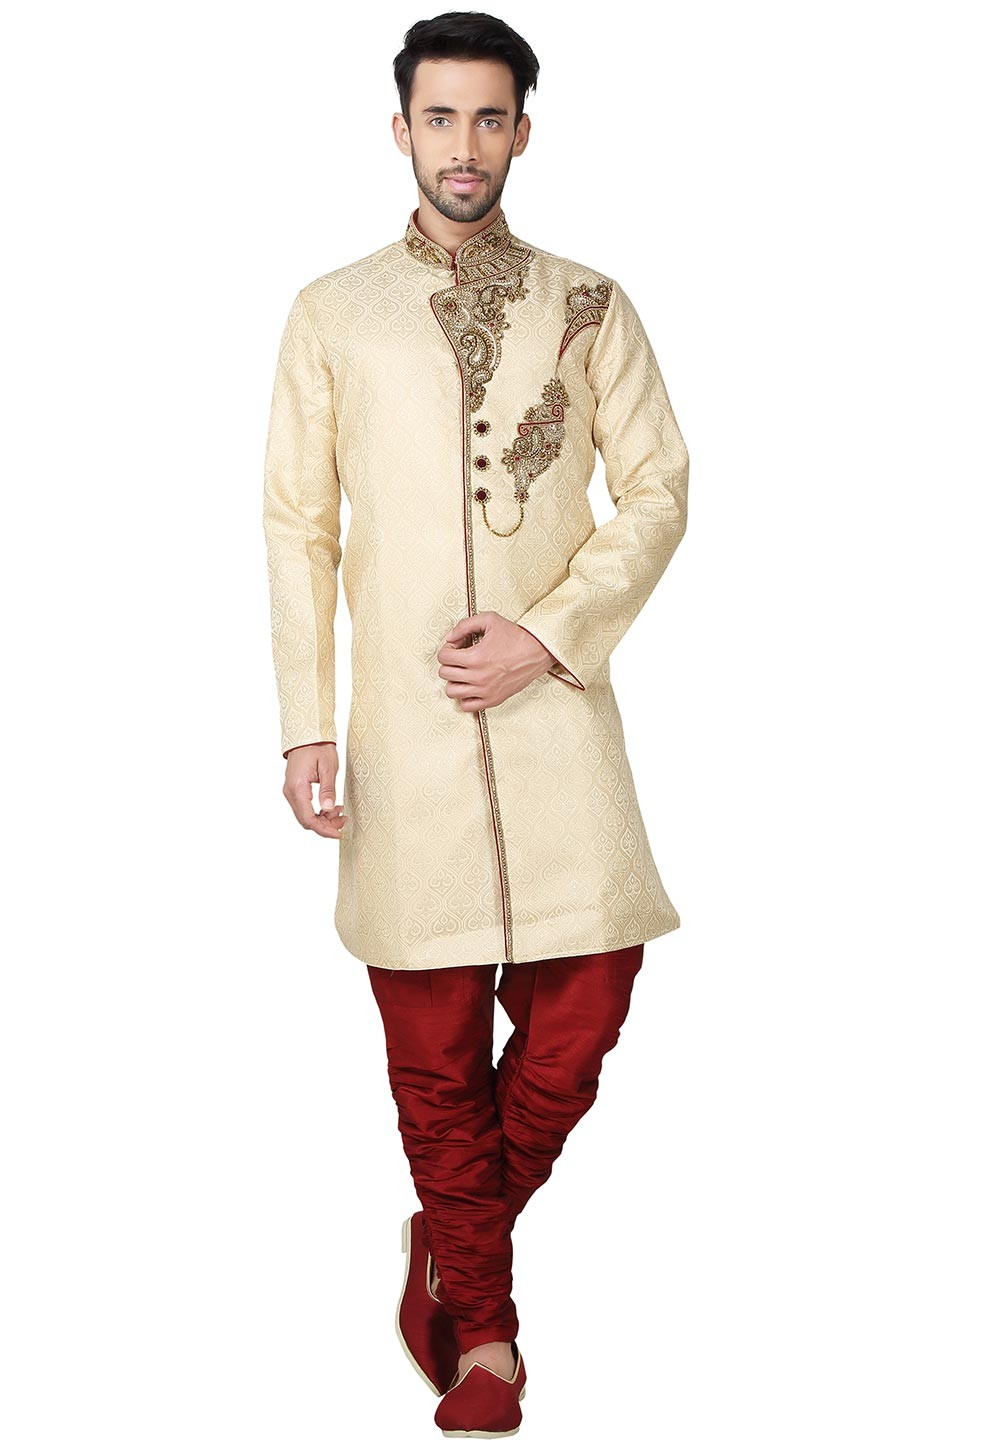 Men's Exquisite Golden Color Brocade Fabric Designer Kurta Pajama.